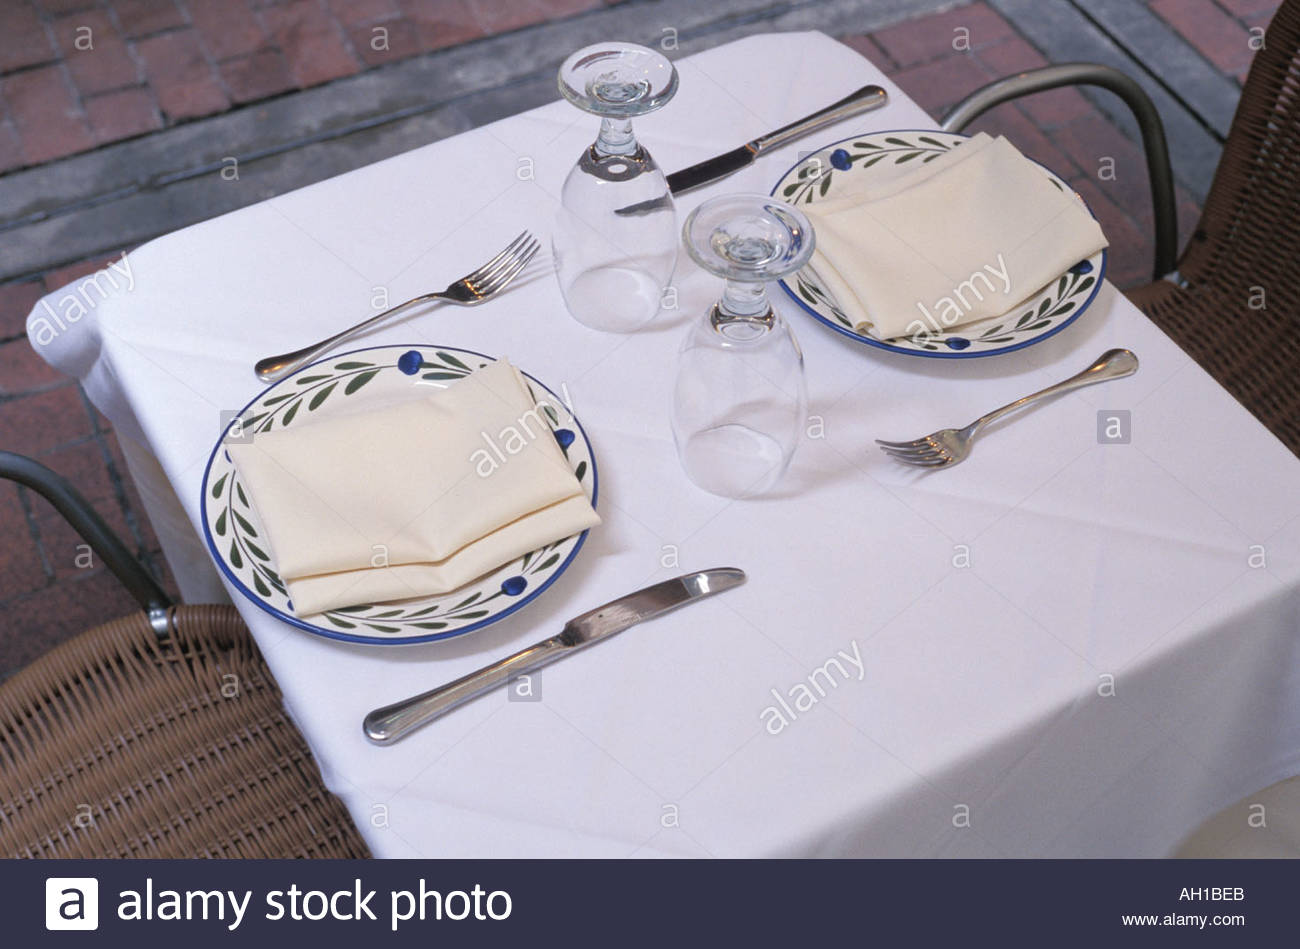 table setting with two plates and utensils & table setting with two plates and utensils Stock Photo: 1121258 - Alamy